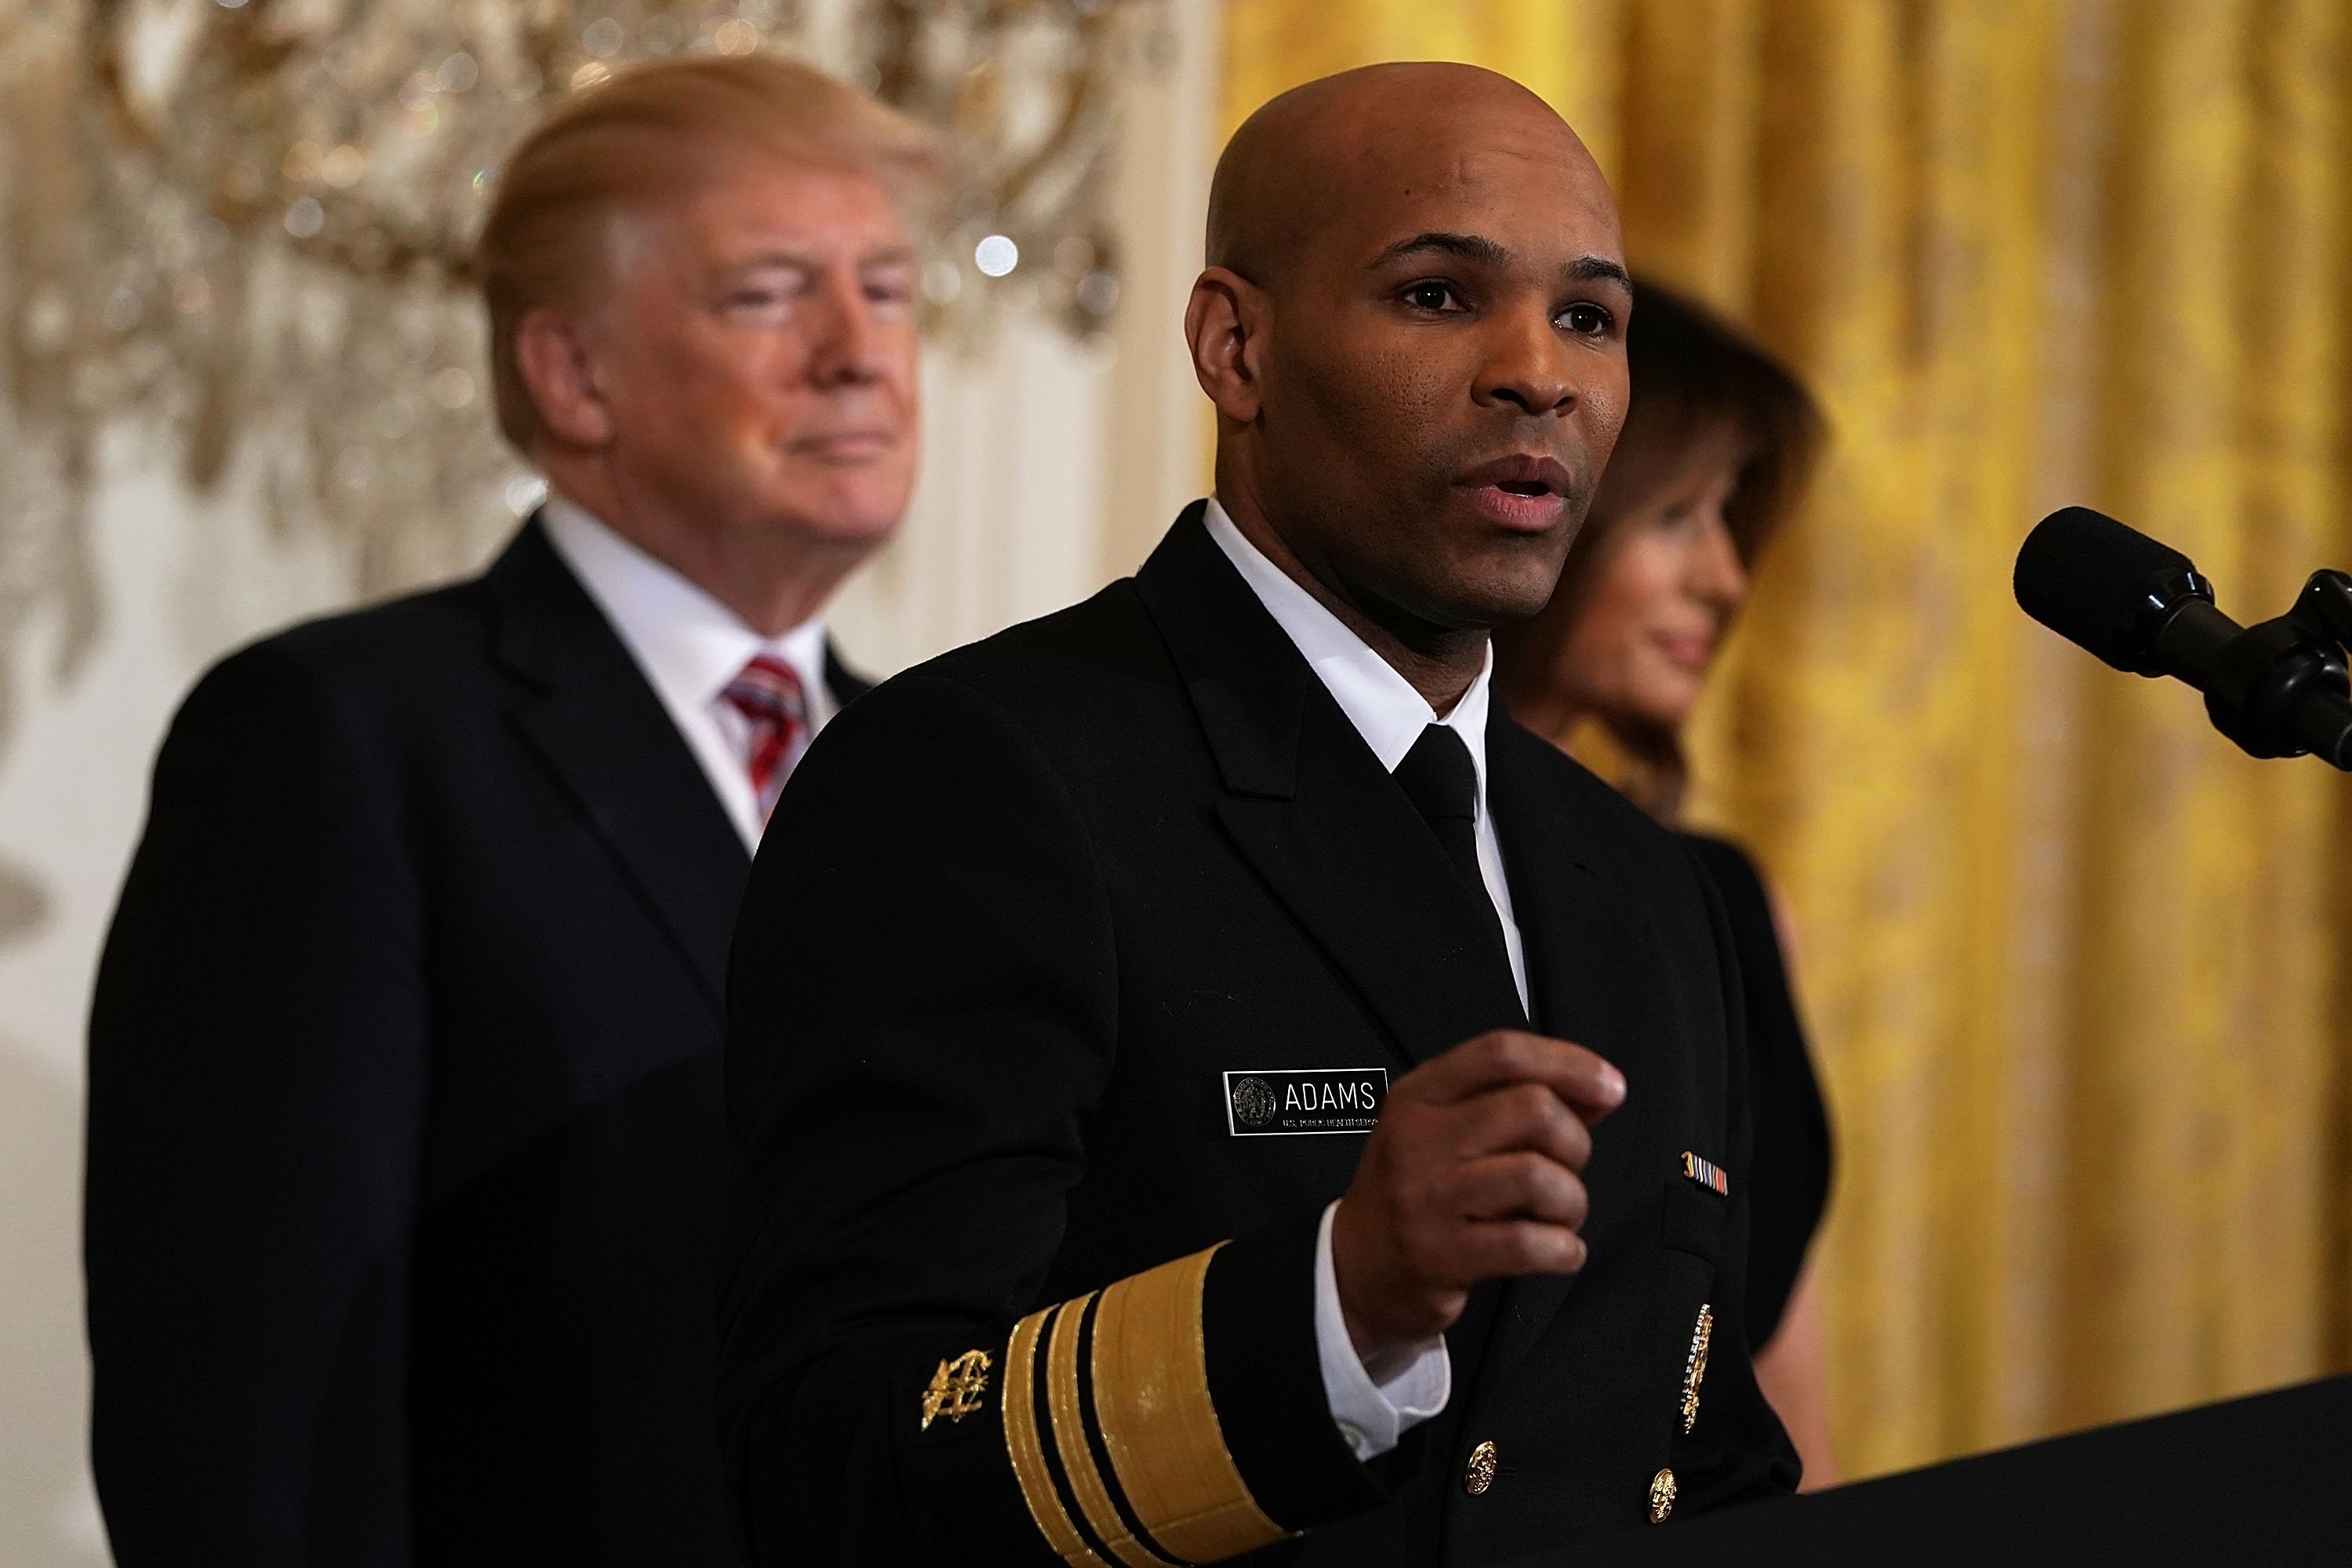 The United States Surgeon General said on Wednesday that he assisted in a medical emergency on board a Delta flight